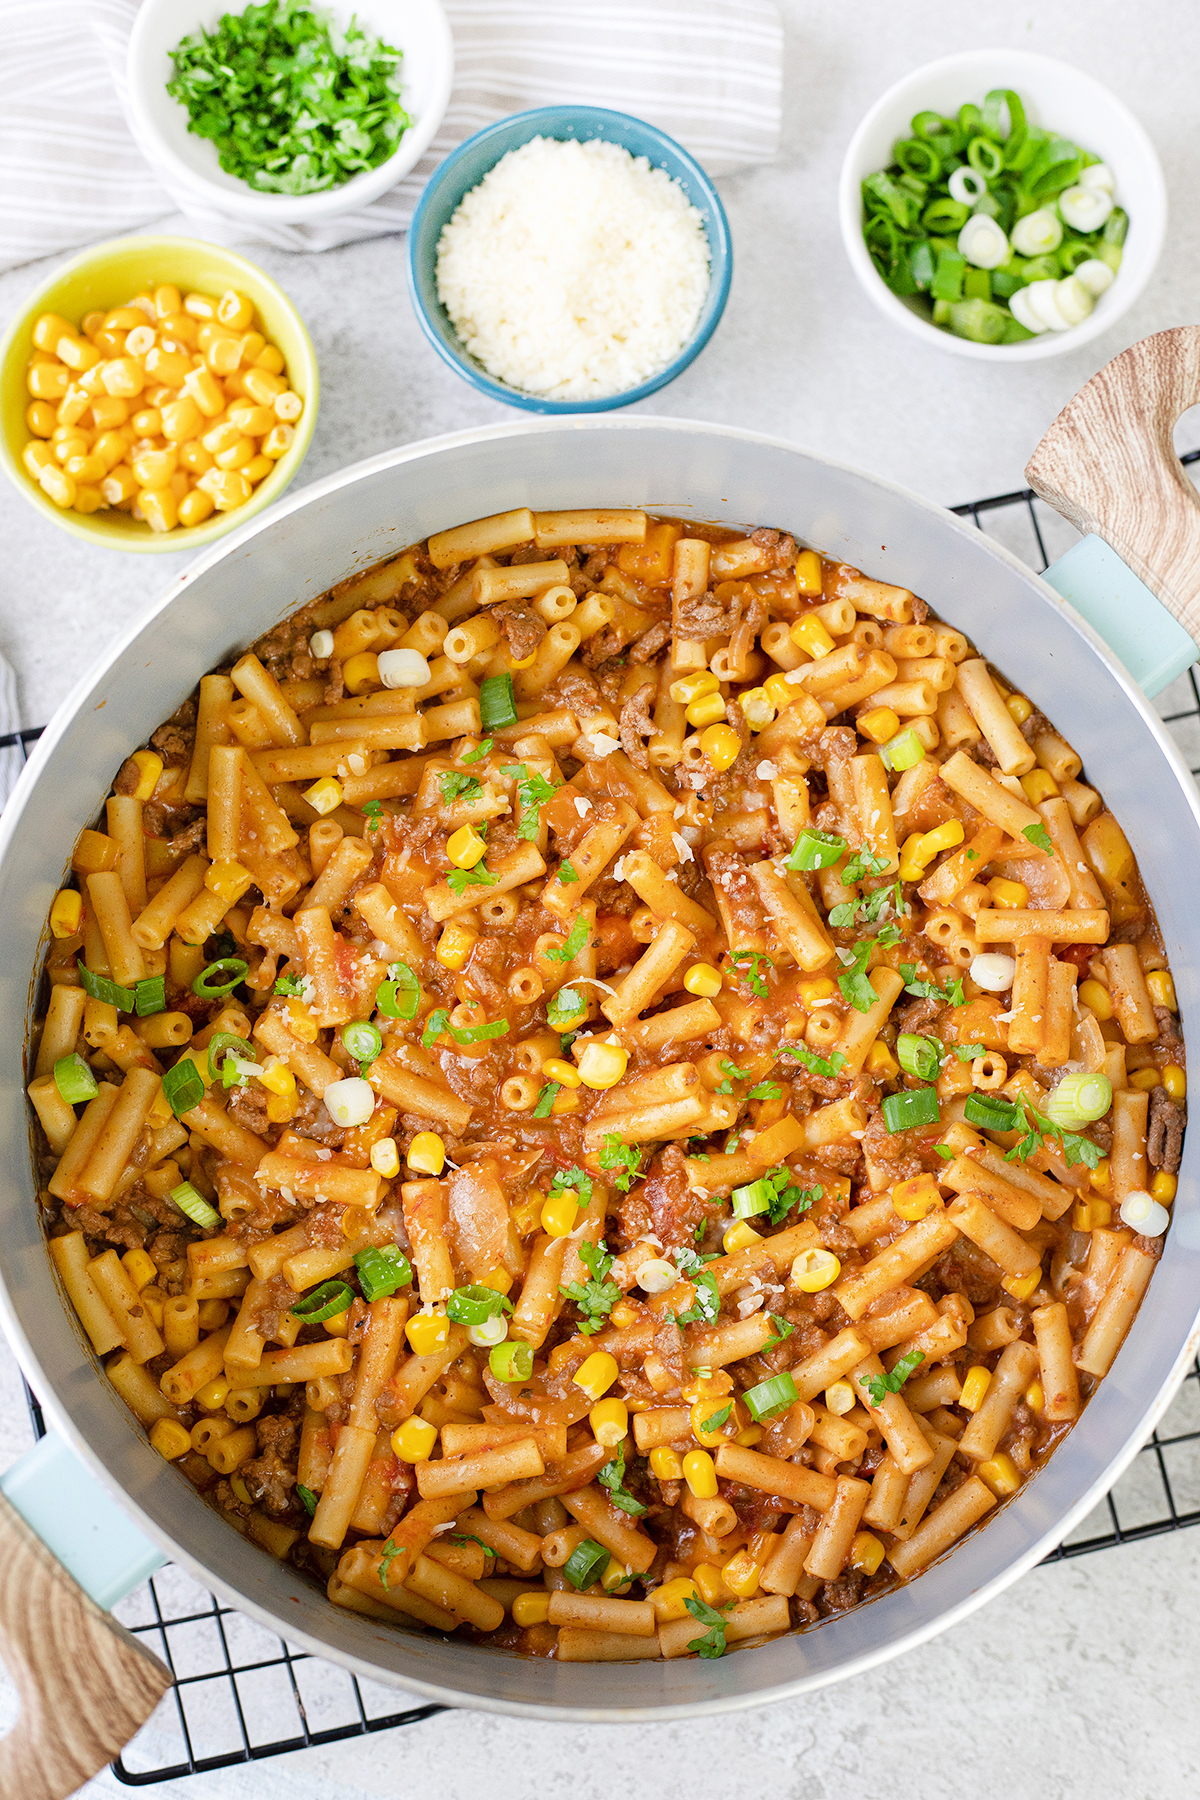 This Taco Pasta is an easy dinner recipe